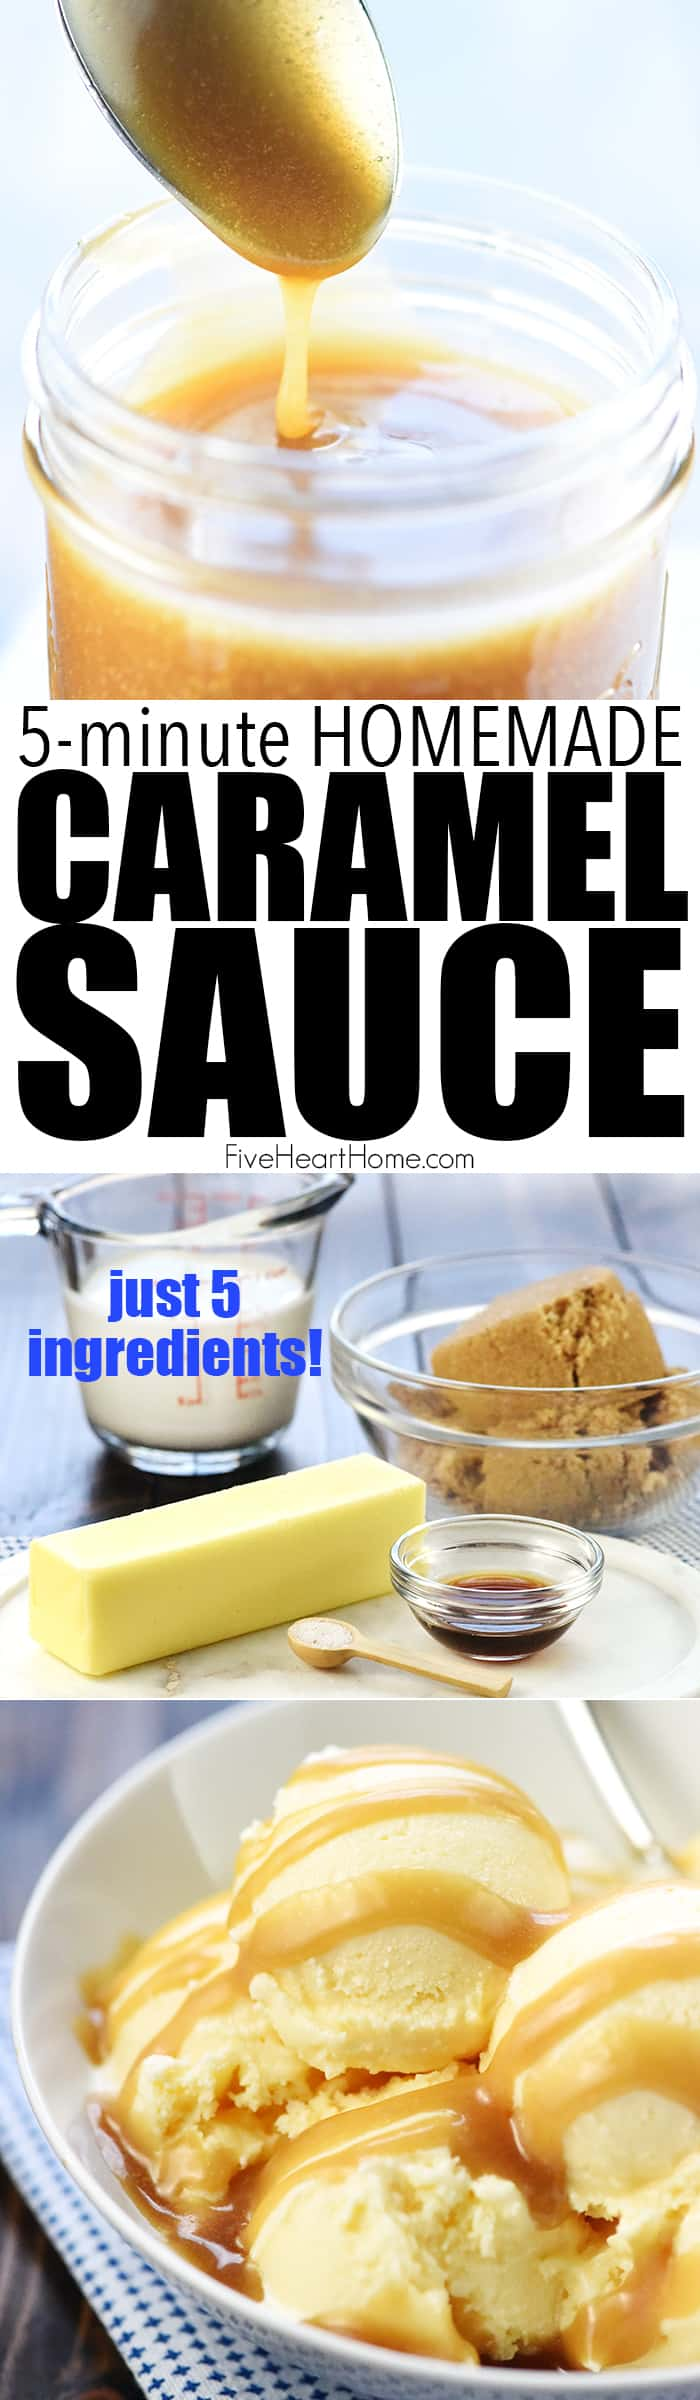 Easy Homemade Caramel Sauce ~ this is the BEST caramel sauce recipe...thick, gooey, and made with just FIVE ingredients in only FIVE minutes! It makes a perfect caramel dip for apples, it's delicious drizzled over brownies or ice cream, and it's even great as a homemade food gift! | FiveHeartHome.com